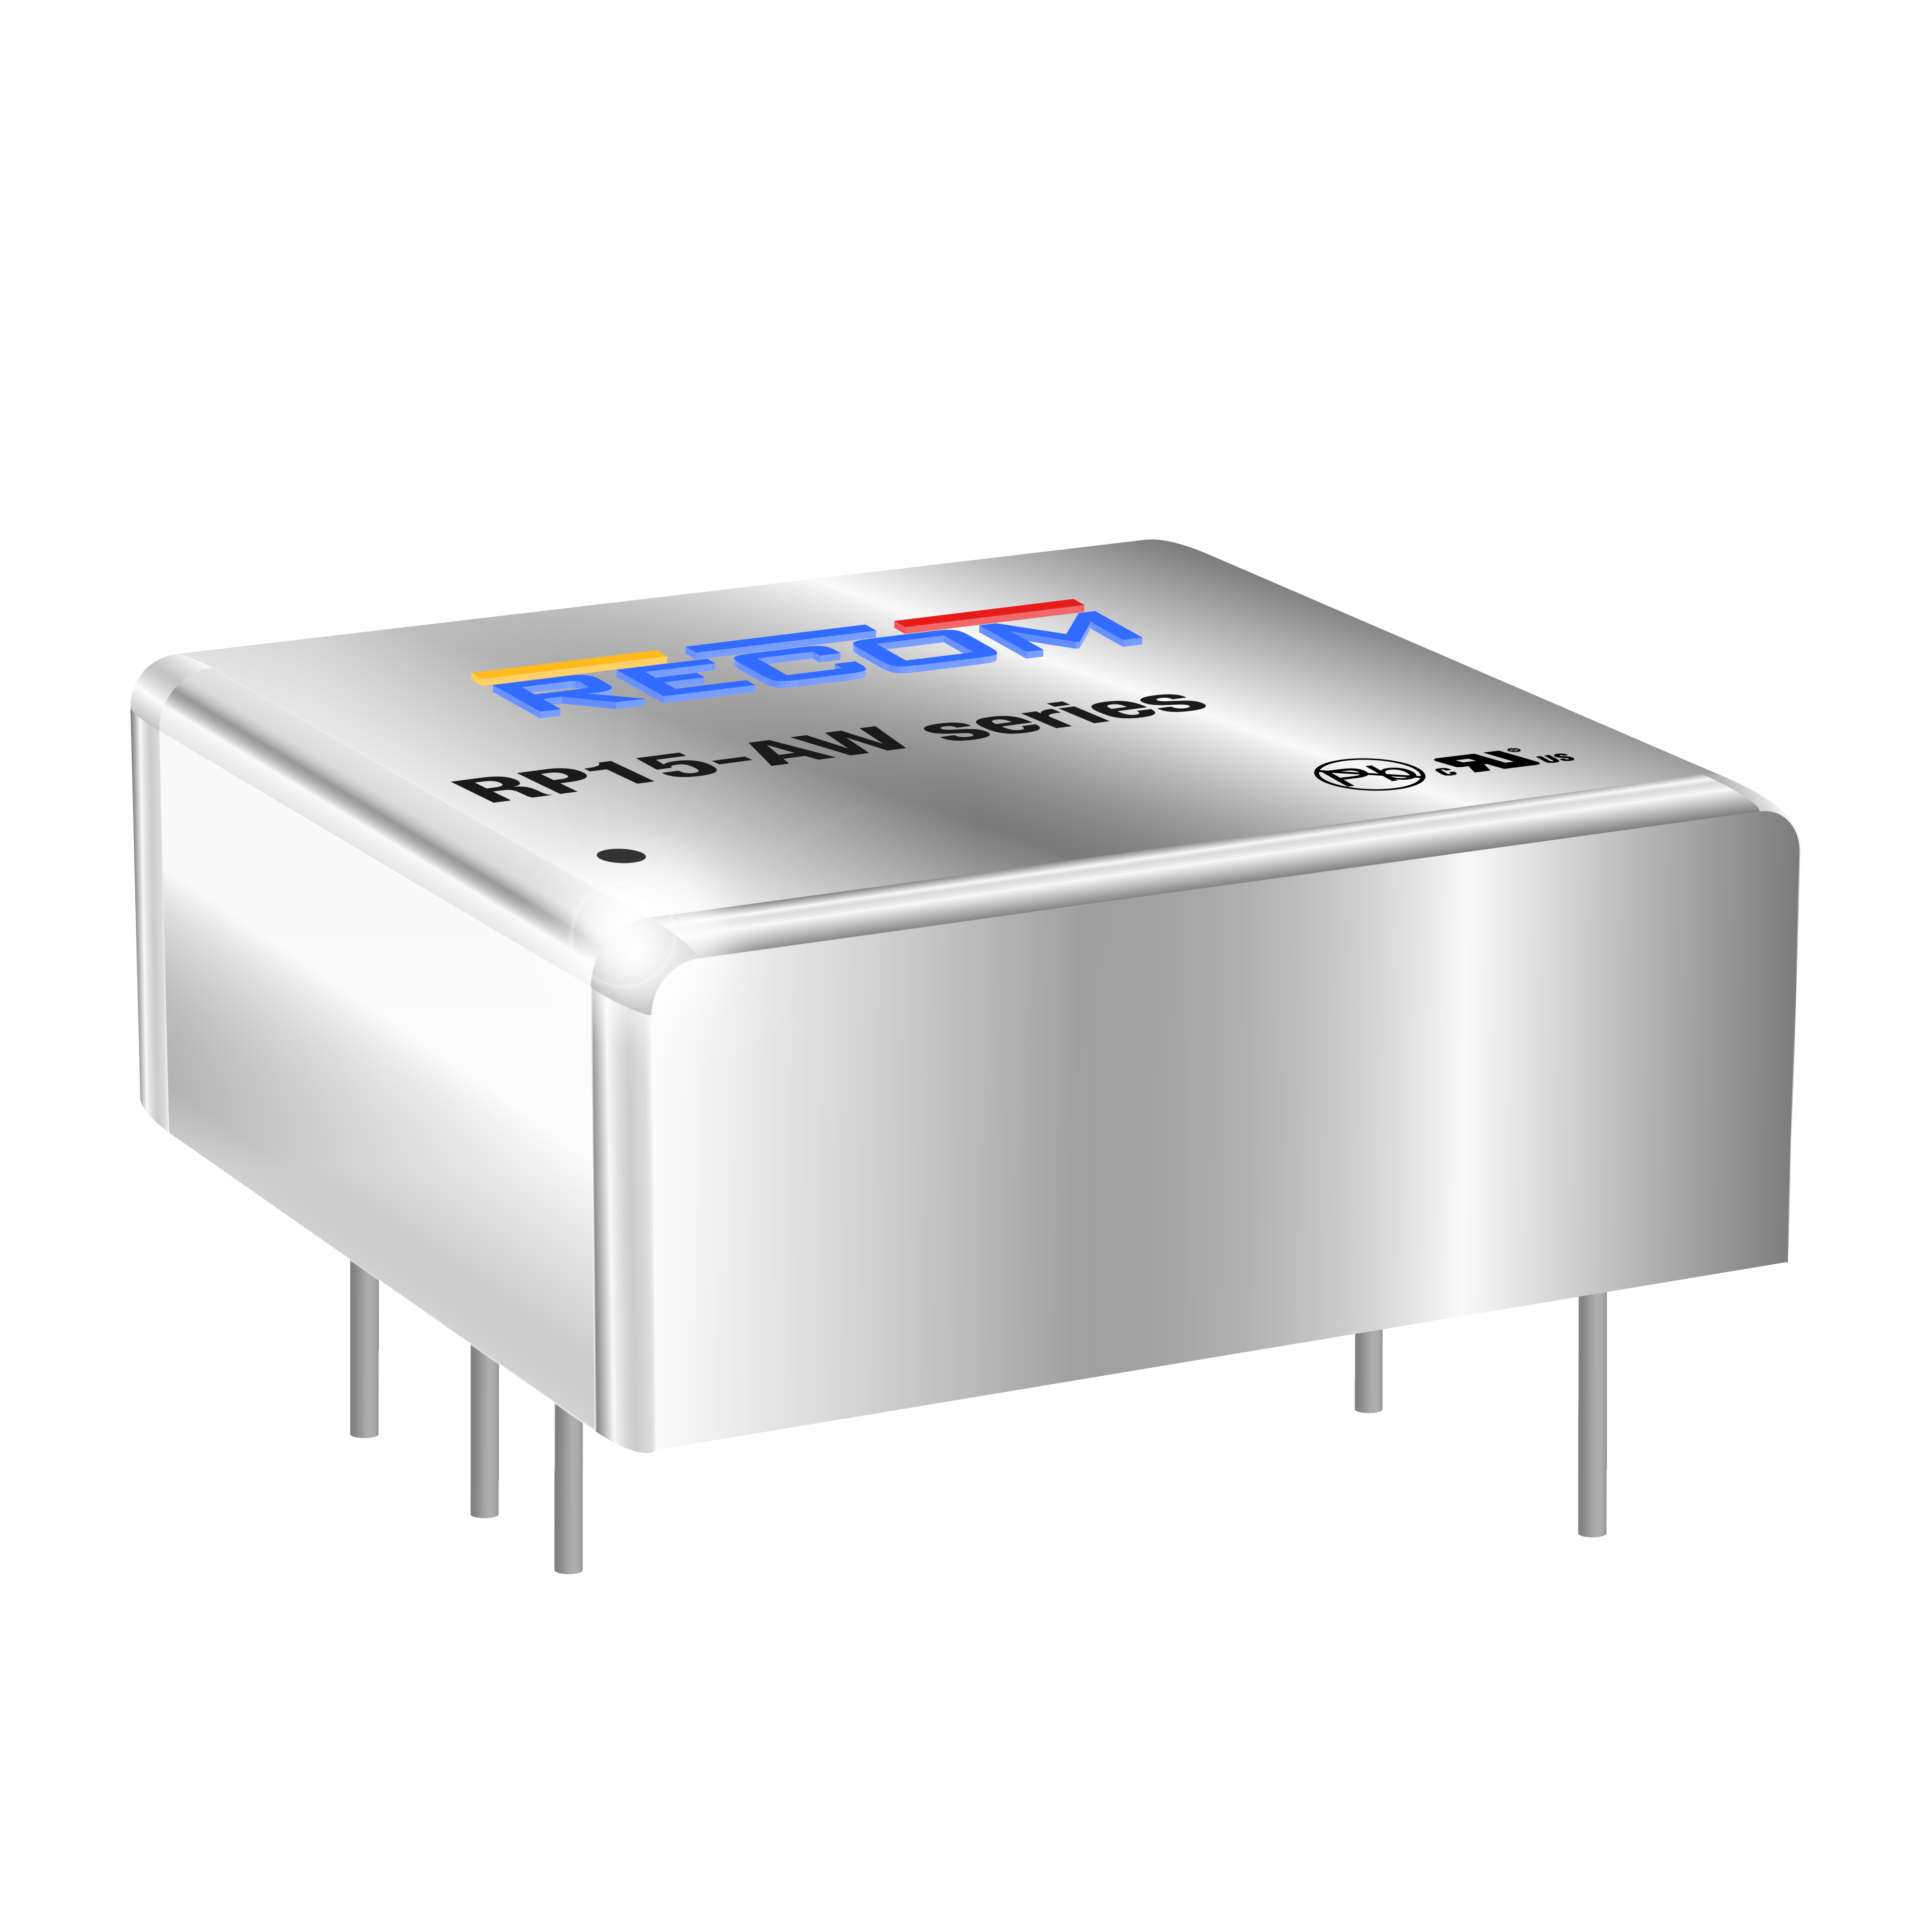 Power Products Voltage Converters, Inverters, Transformers DC-DC Converters RP15-2412SAW by Recom Power